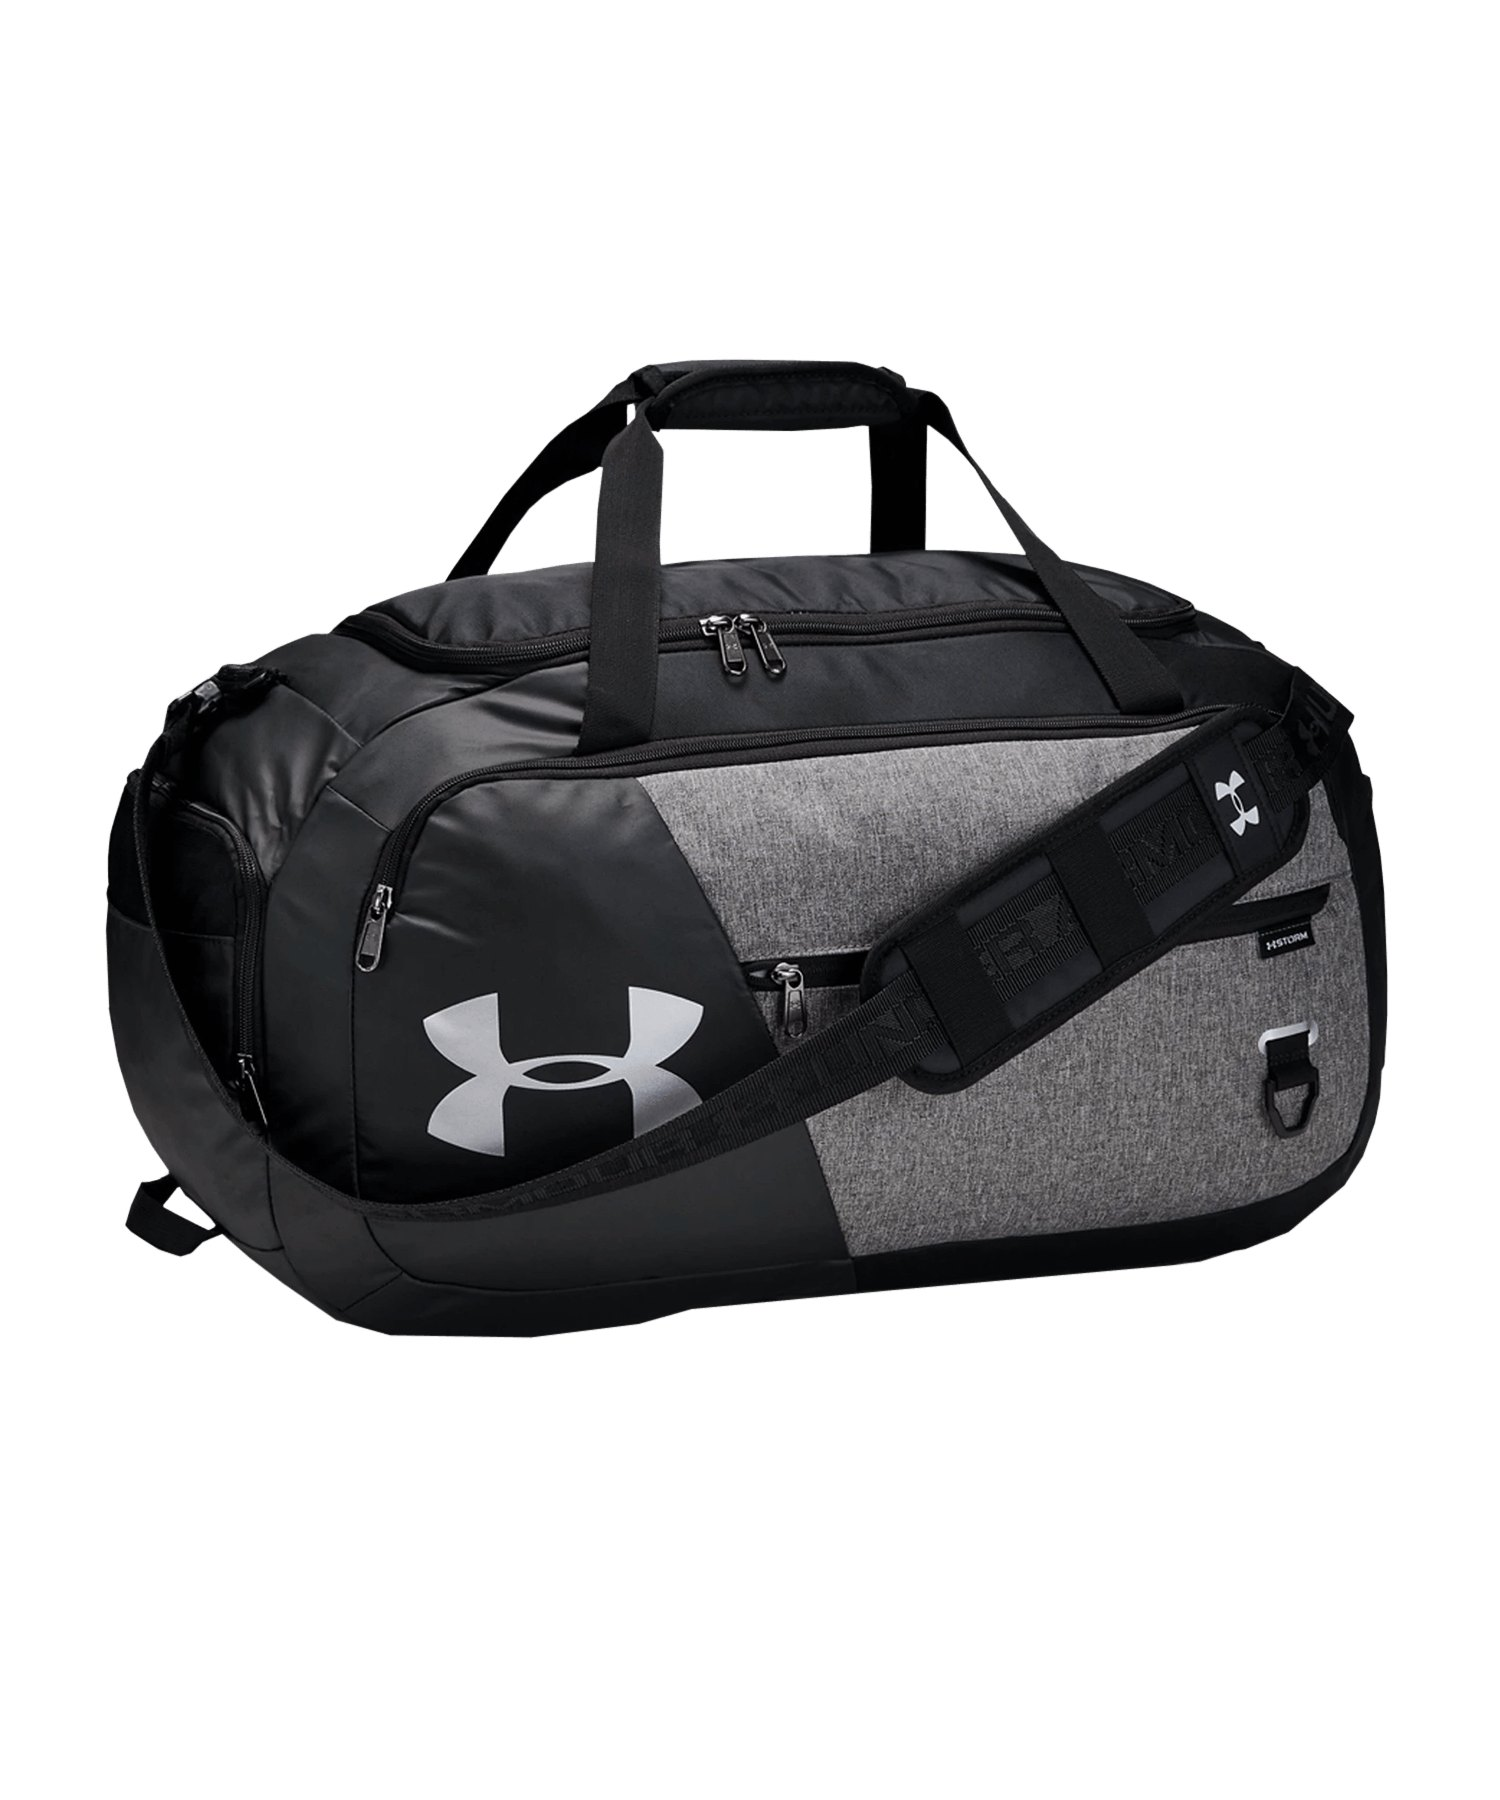 Under Armour Duffle 4.0 Sporttasche M F040 - grau